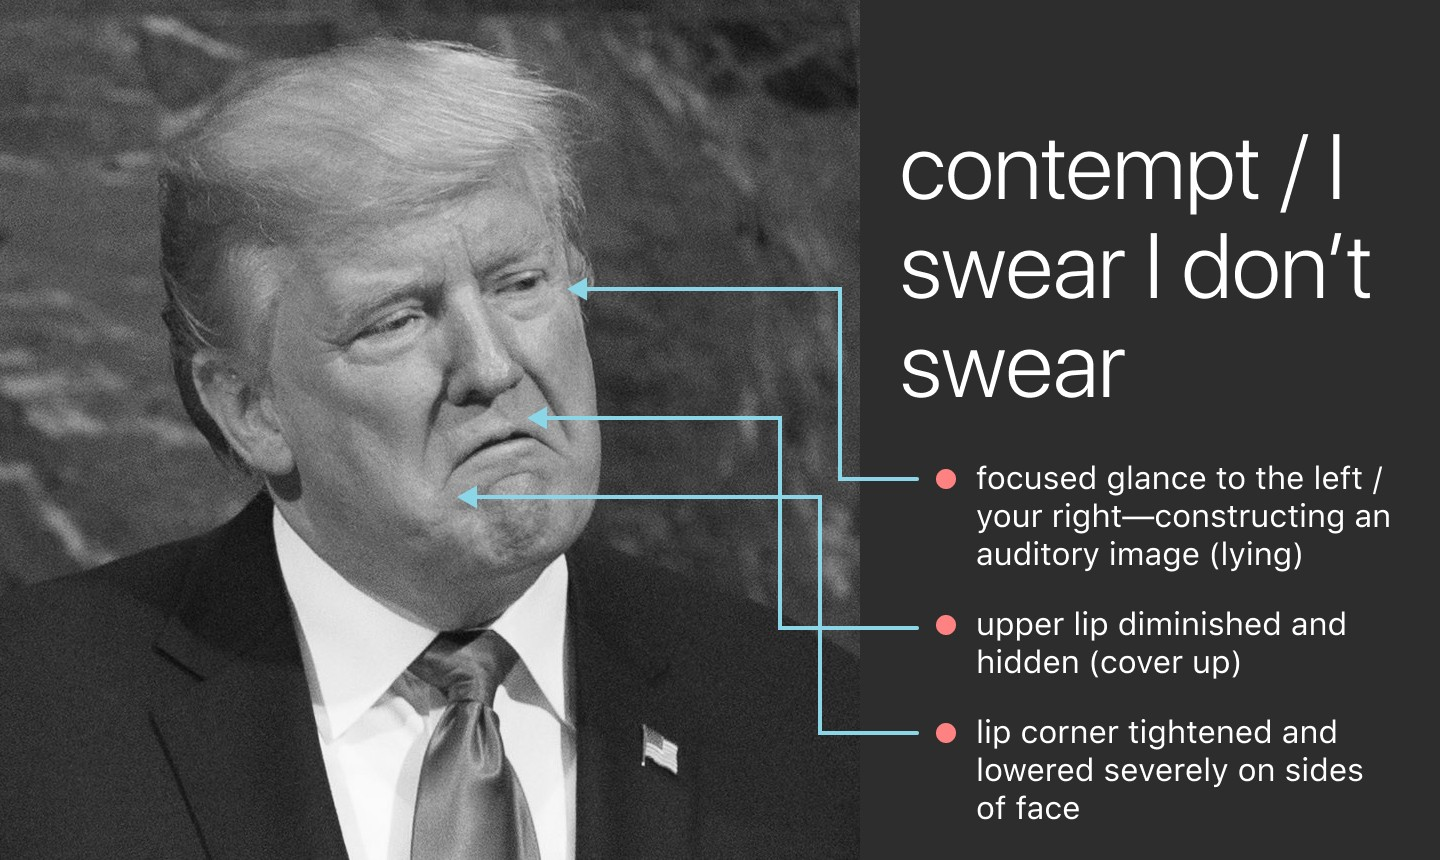 Donald Trump's face. Lines drawn to show: • focused glance to left (lying) • upper lip diminished (cover up)